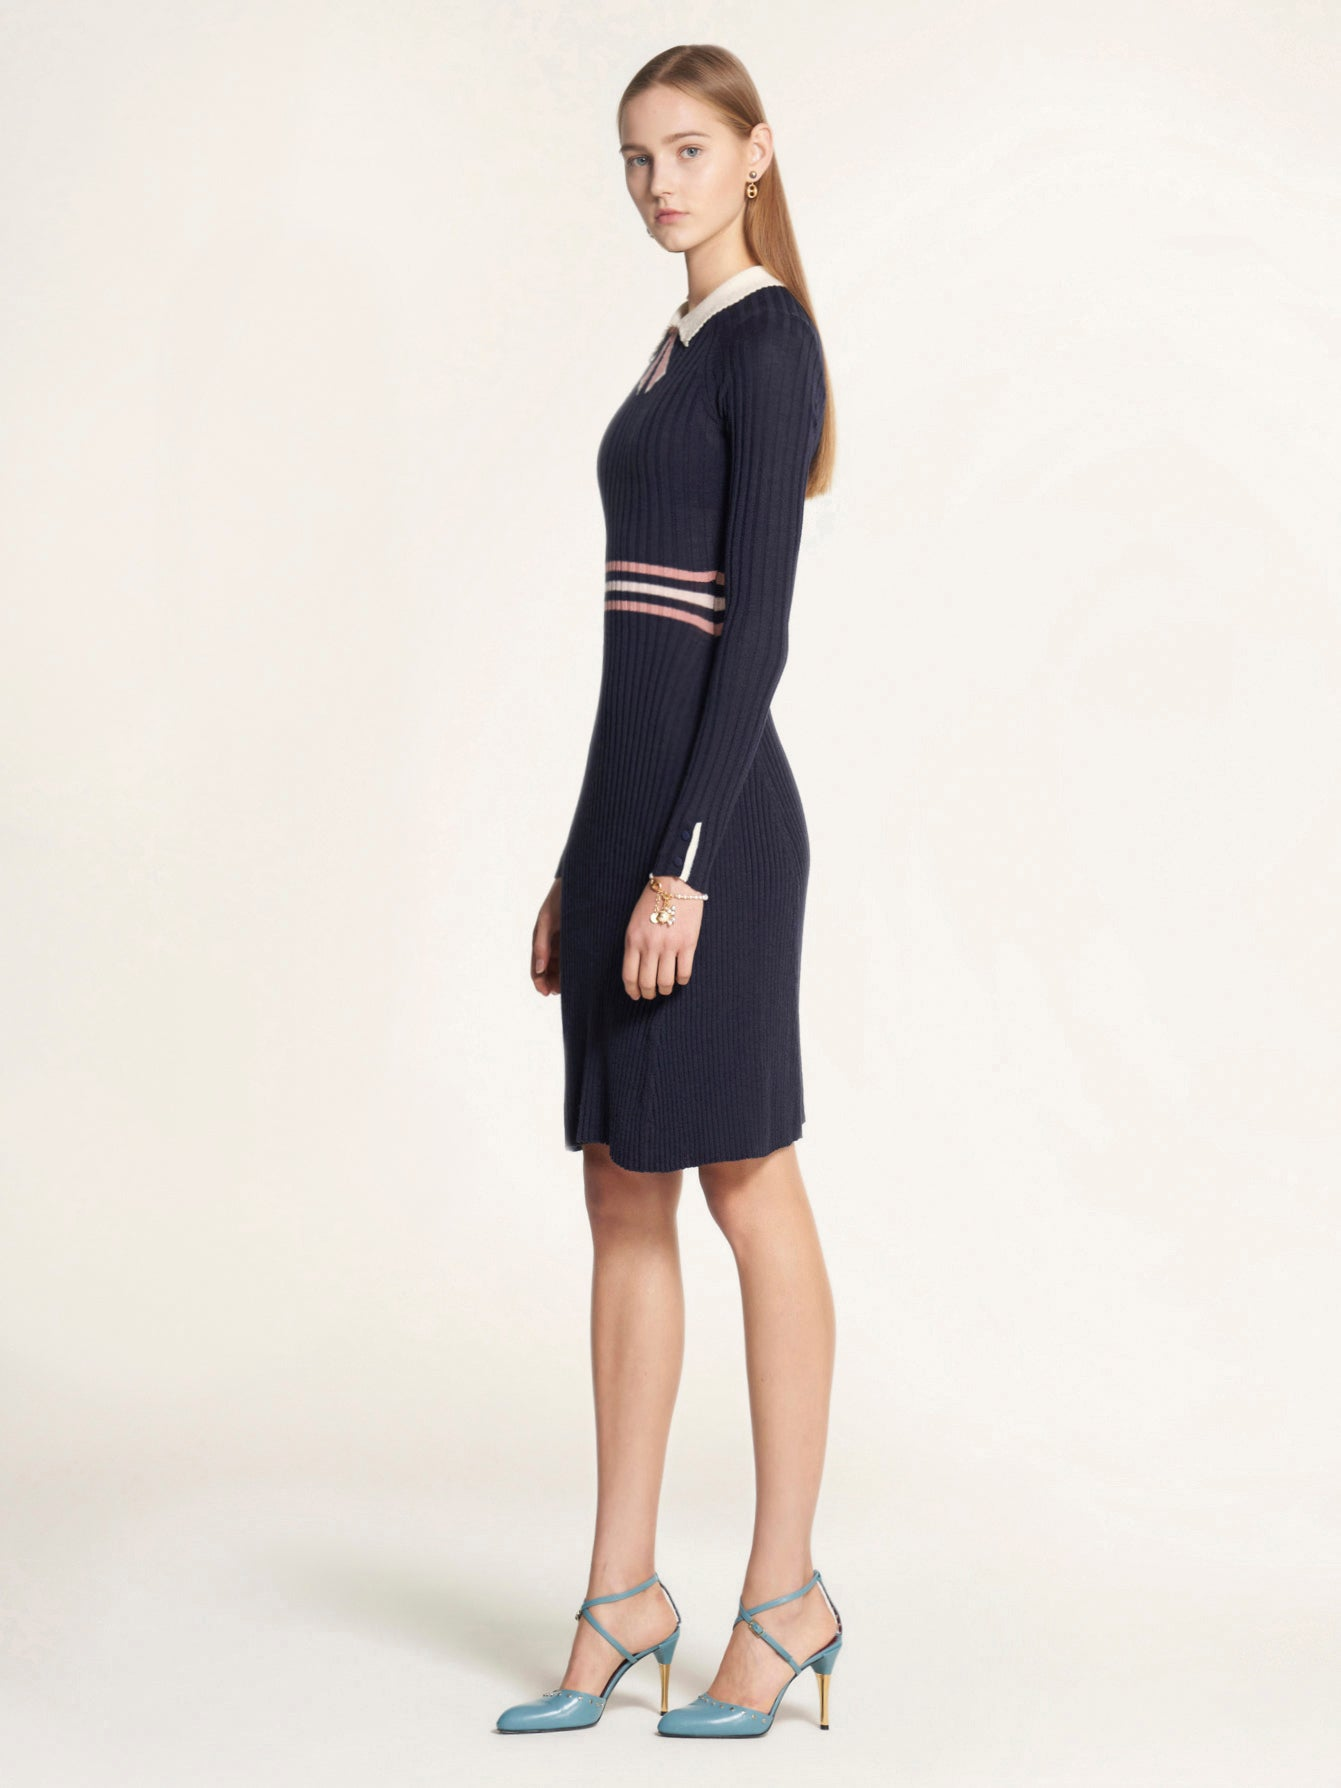 Ribbed Knit Dress with Perforated Collar